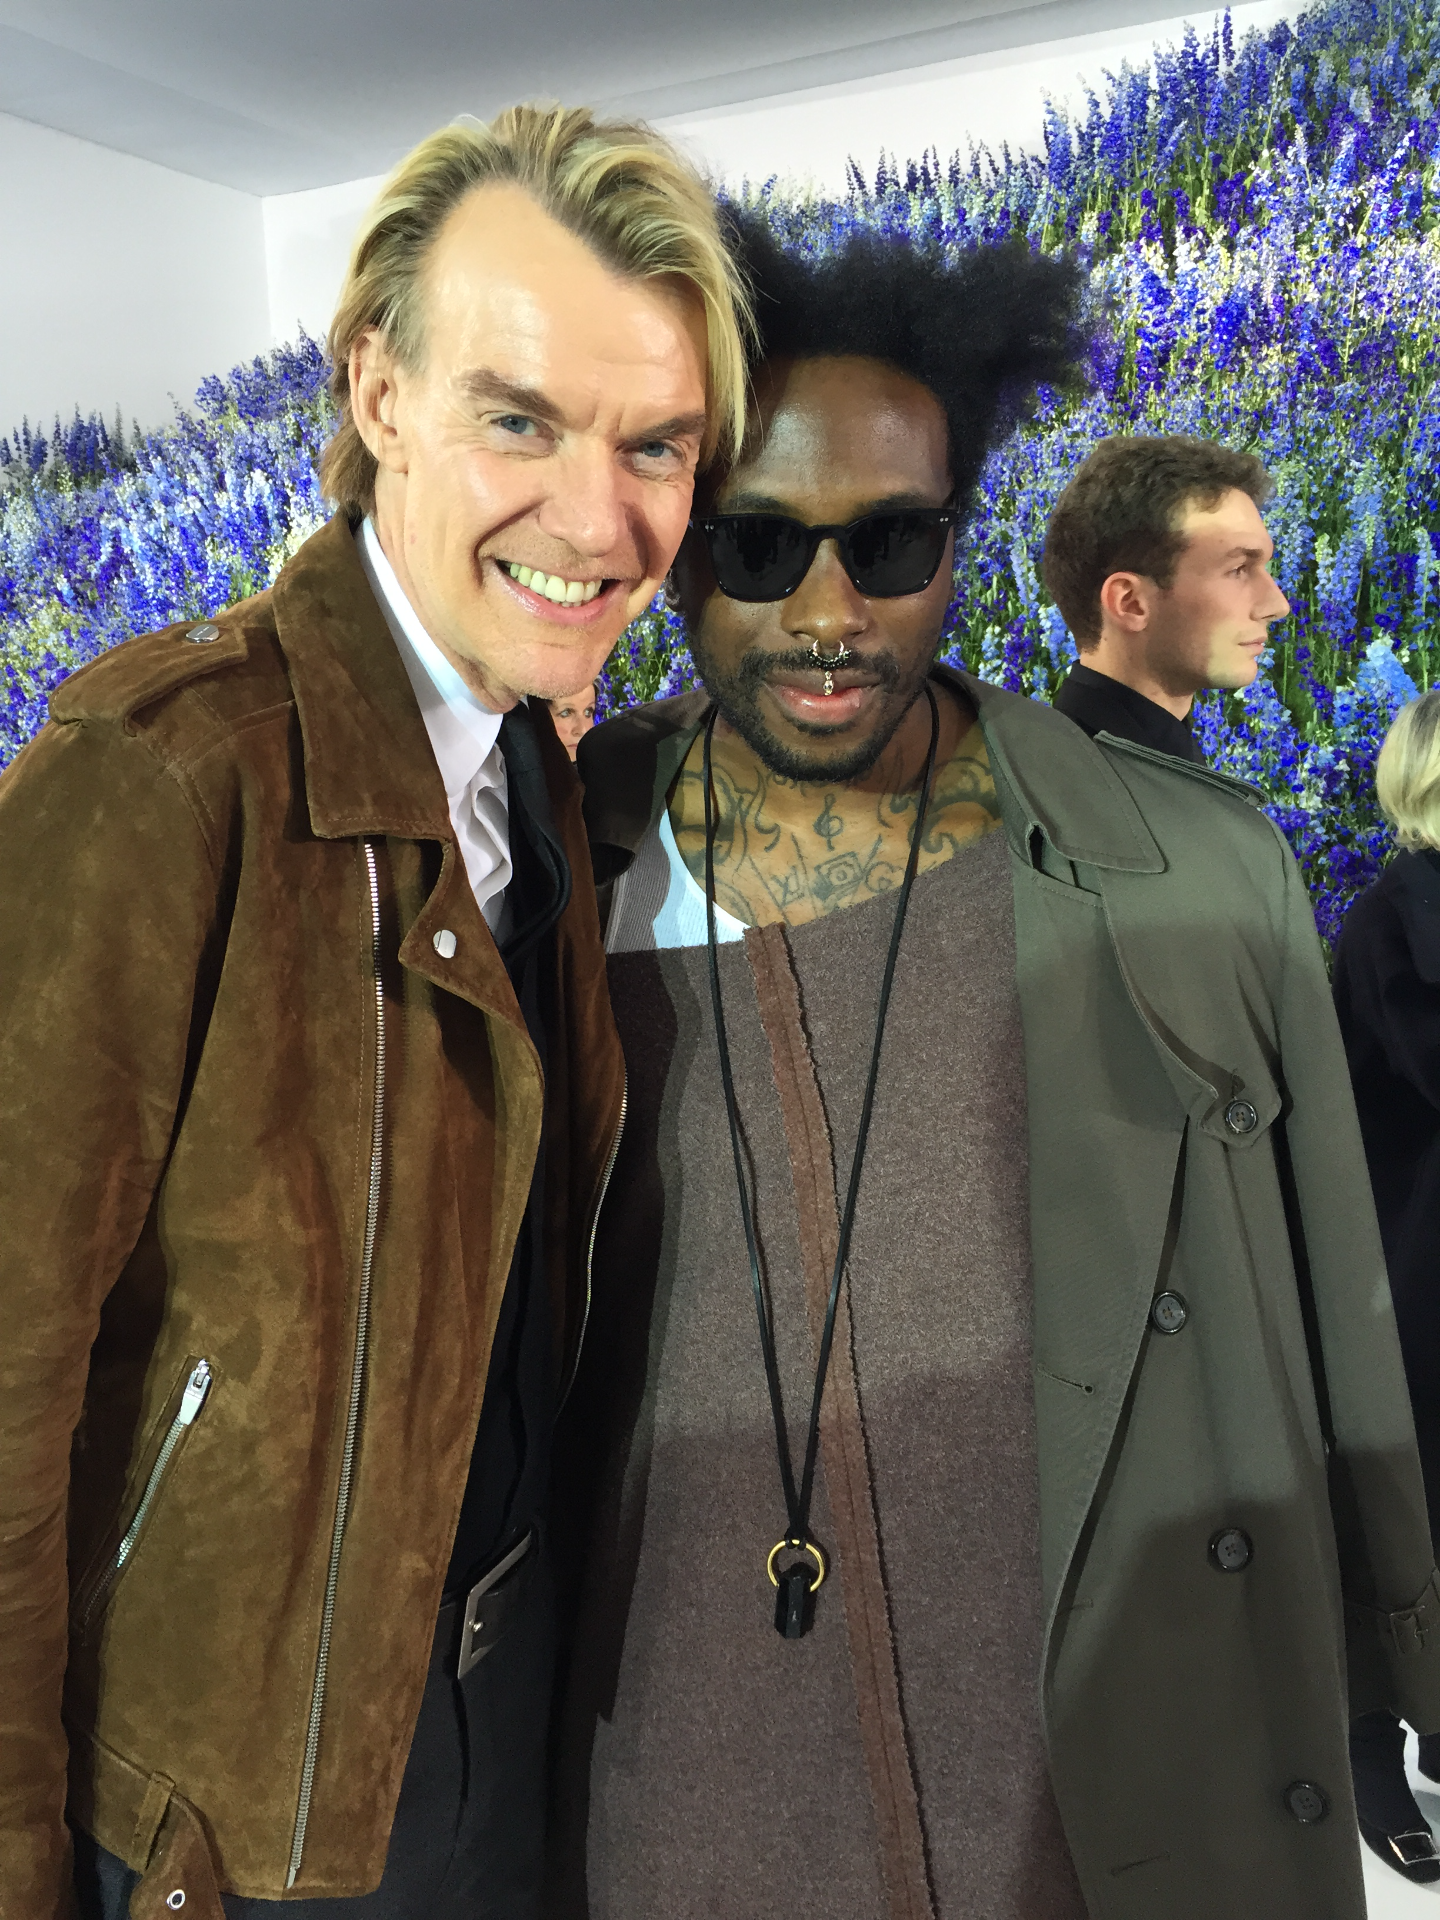 W/ Ken Downing at Dior SS16 PFW